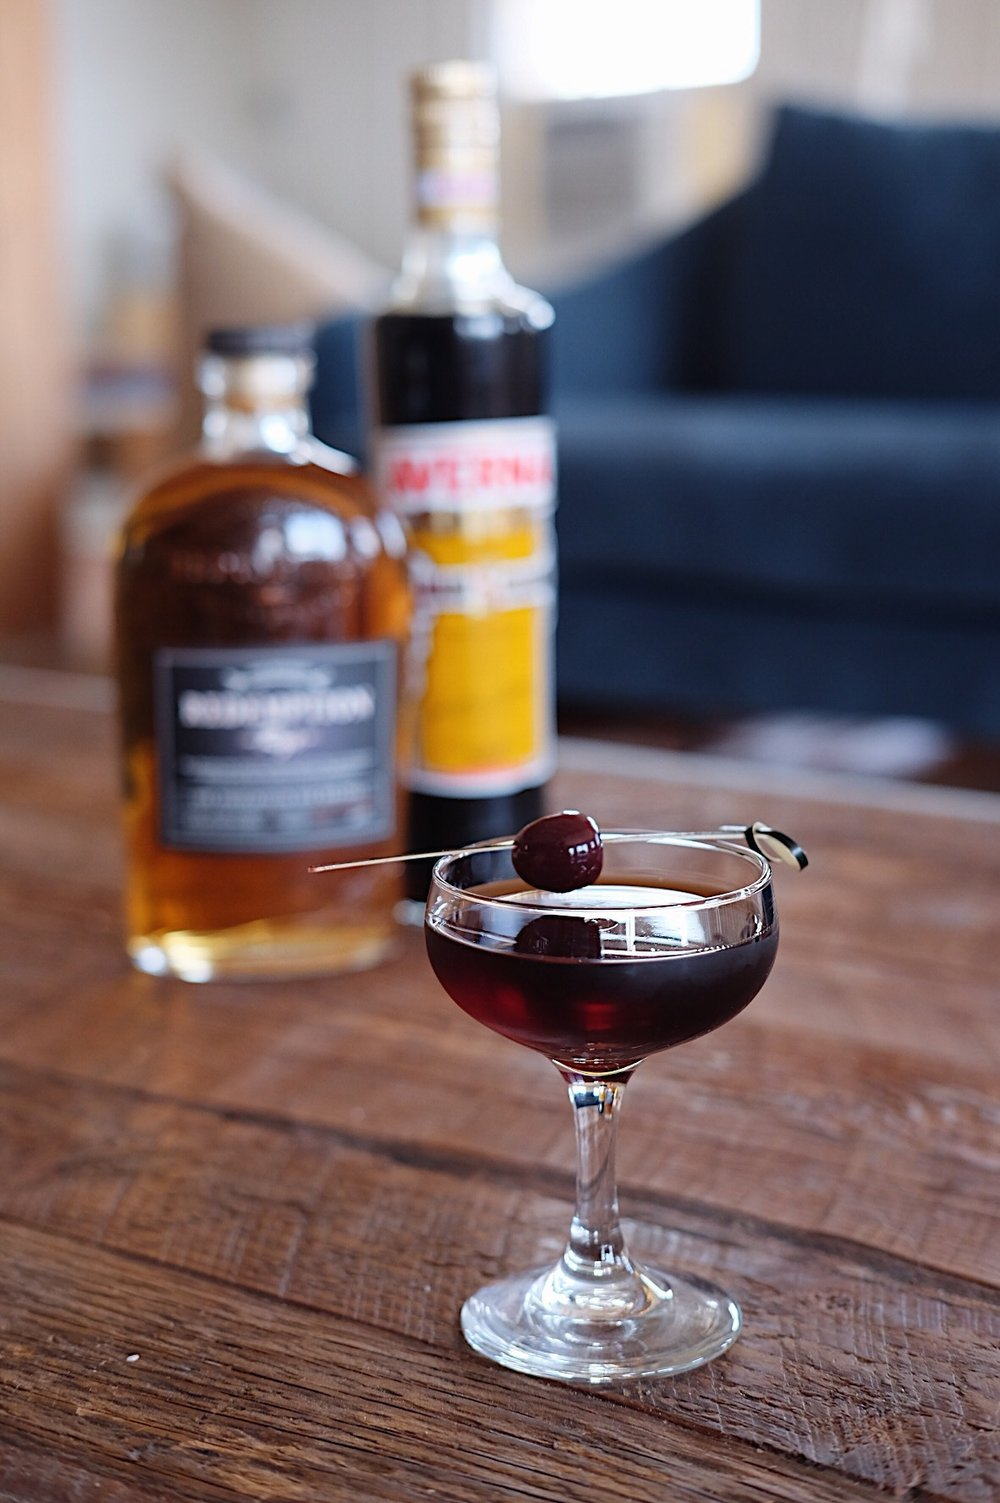 ingredients: - 2 oz rye whiskey1 oz Amaro Averna1 dash orange bitters1 dash aromatic bittersGarnish: Luxardo maraschino cherry